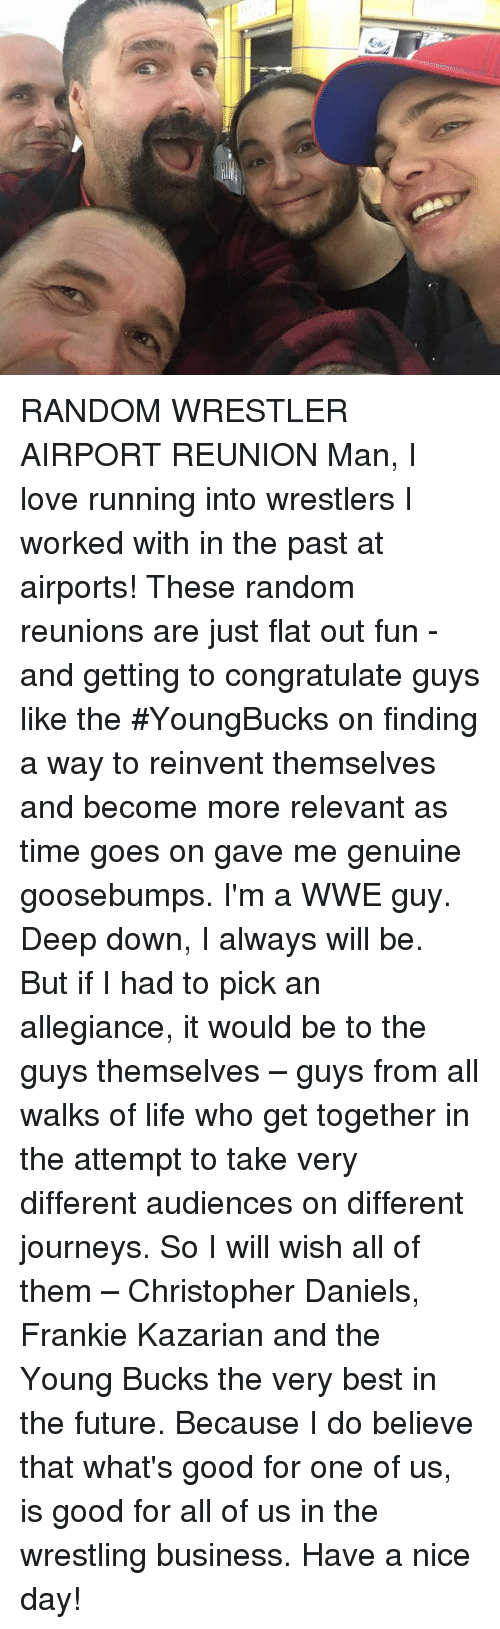 Relevancy: RANDOM WRESTLER AIRPORT REUNION Man, I love running into wrestlers I worked with in the past at airports! These random reunions are just flat out fun - and getting to congratulate guys like the #YoungBucks on finding a way to reinvent themselves and become more relevant as time goes on gave me genuine goosebumps.   I'm a WWE guy. Deep down, I always will be. But if I had to pick an allegiance, it would be to the guys themselves – guys from all walks of life who get together in the attempt to take very different audiences on different journeys. So I will wish all of them – Christopher Daniels, Frankie Kazarian and the Young Bucks the very best in the future. Because I do believe that what's good for one of us, is good for all of us in the wrestling business. Have a nice day!